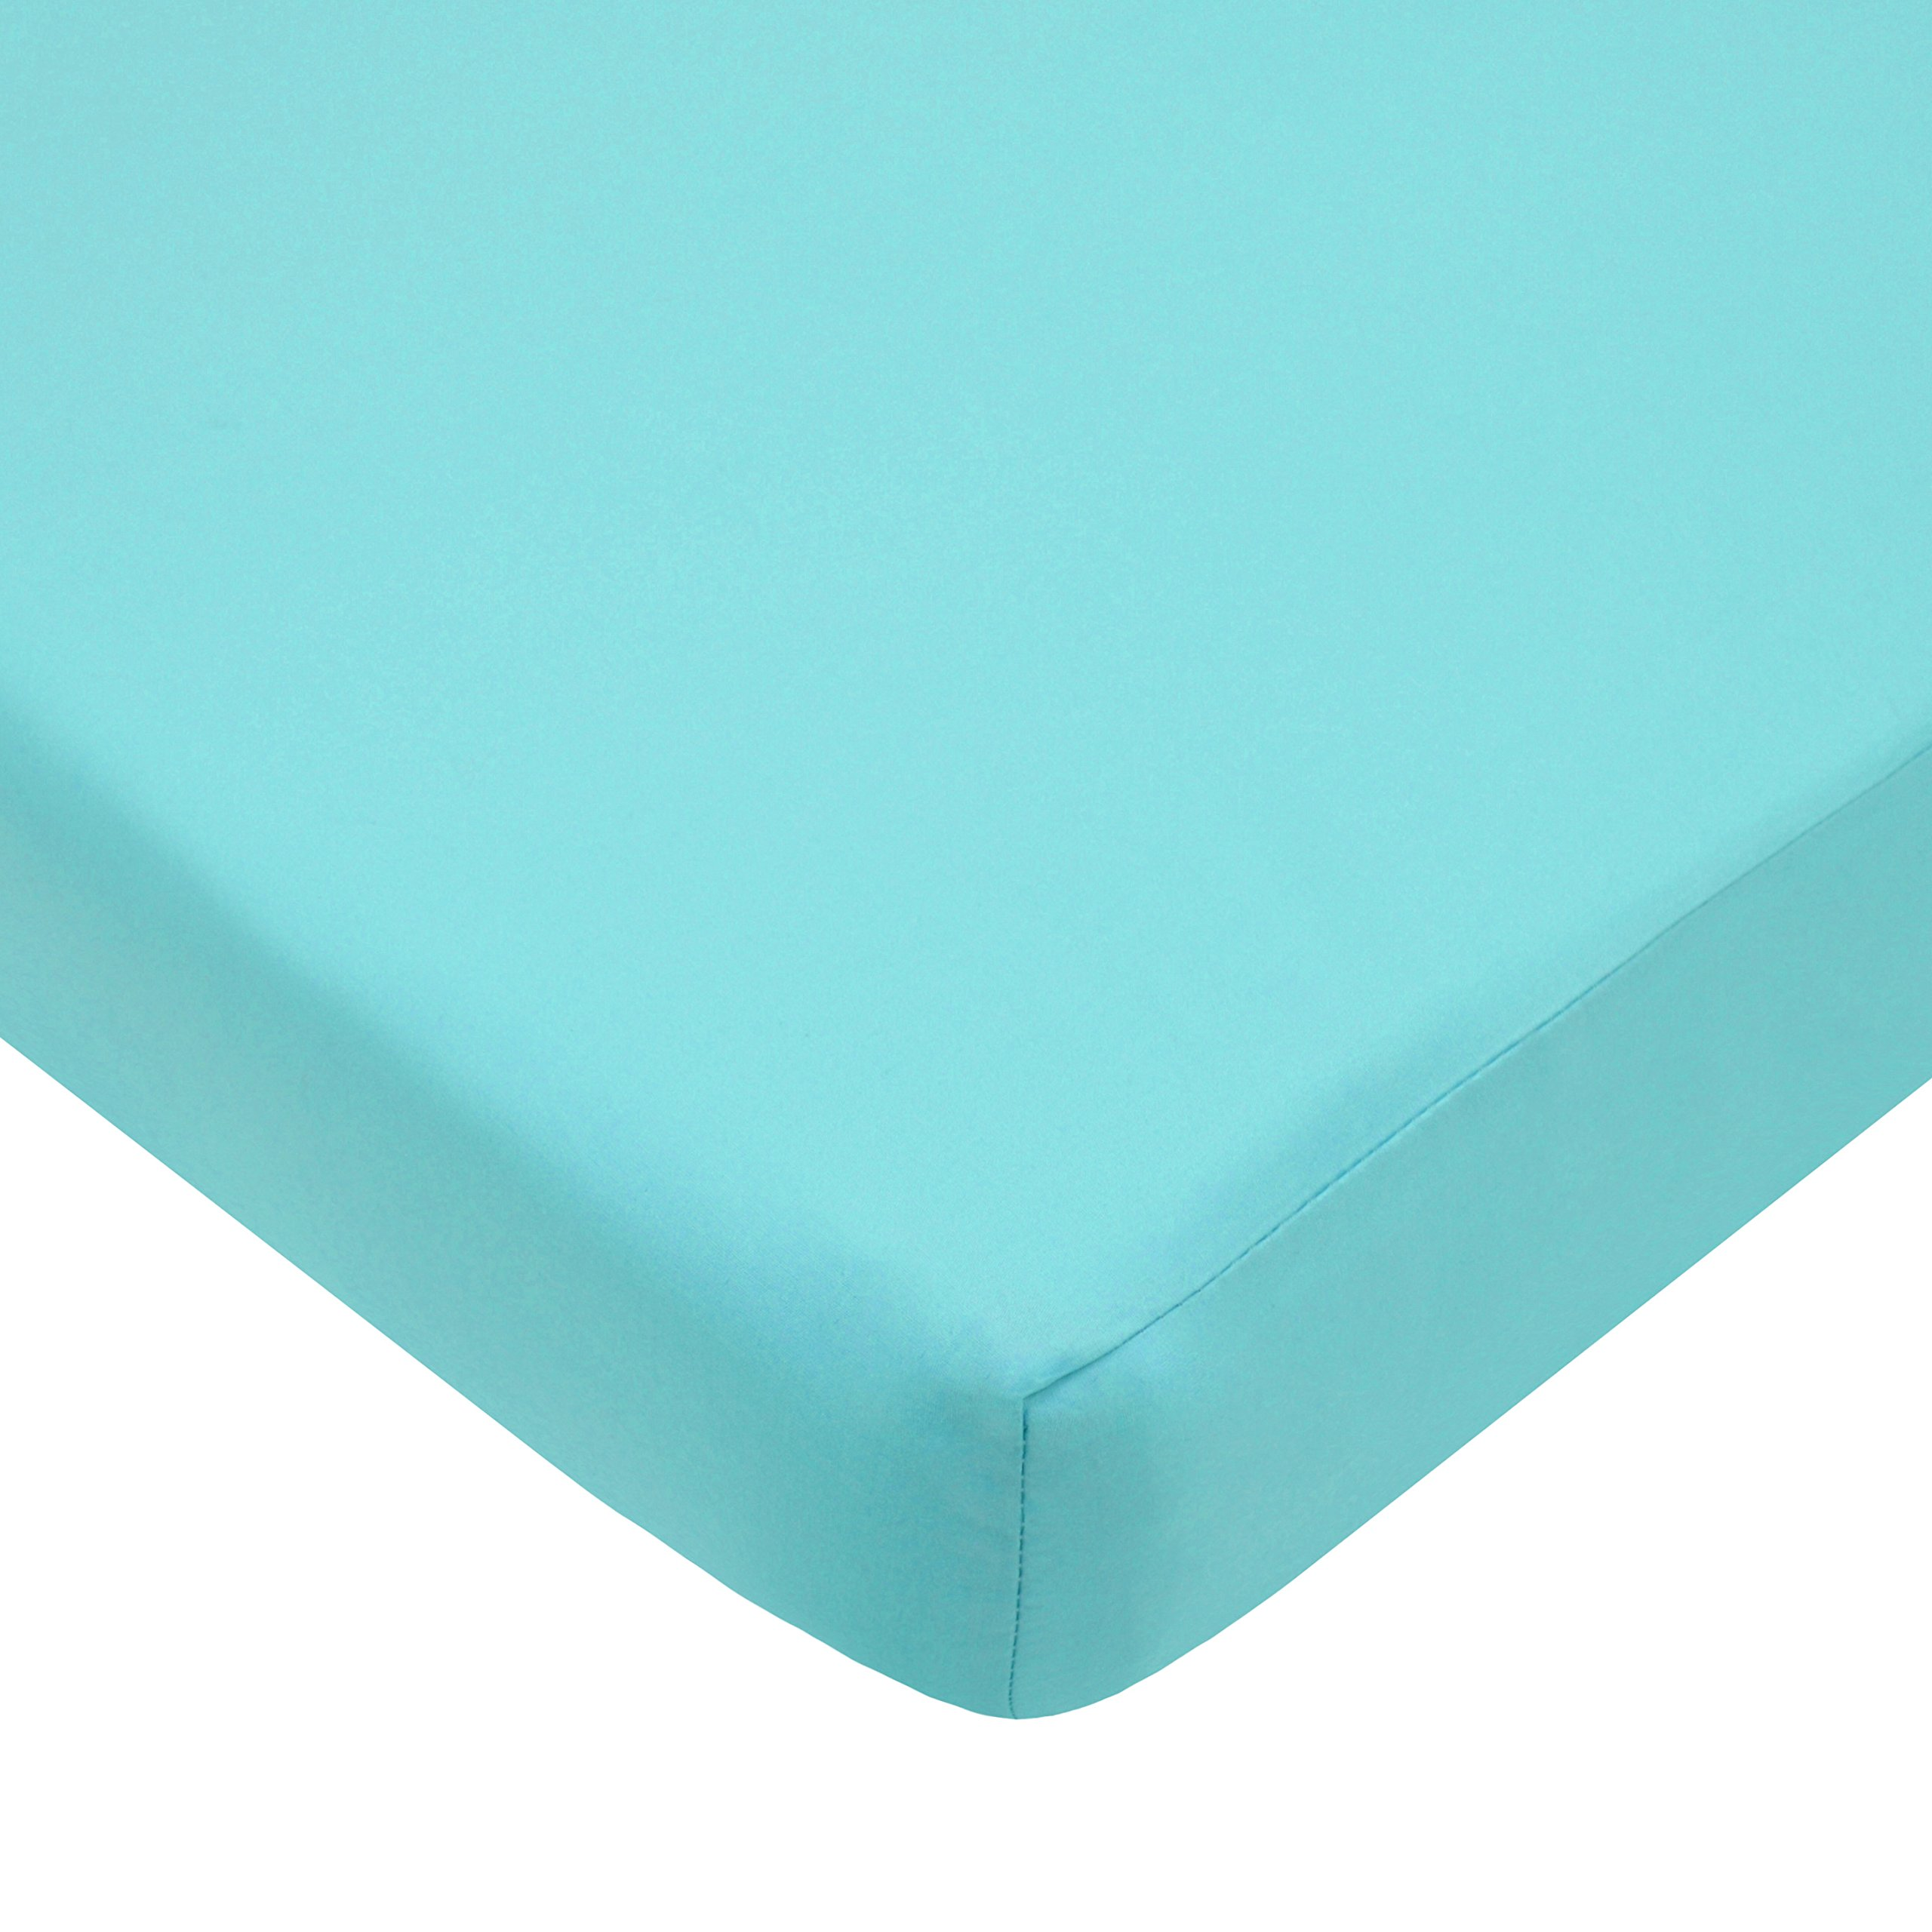 American Baby Company 100% Natural Cotton Percale Fitted Portable/Mini Crib Sheet, Aqua, Soft Breathable, for Boys and Girls